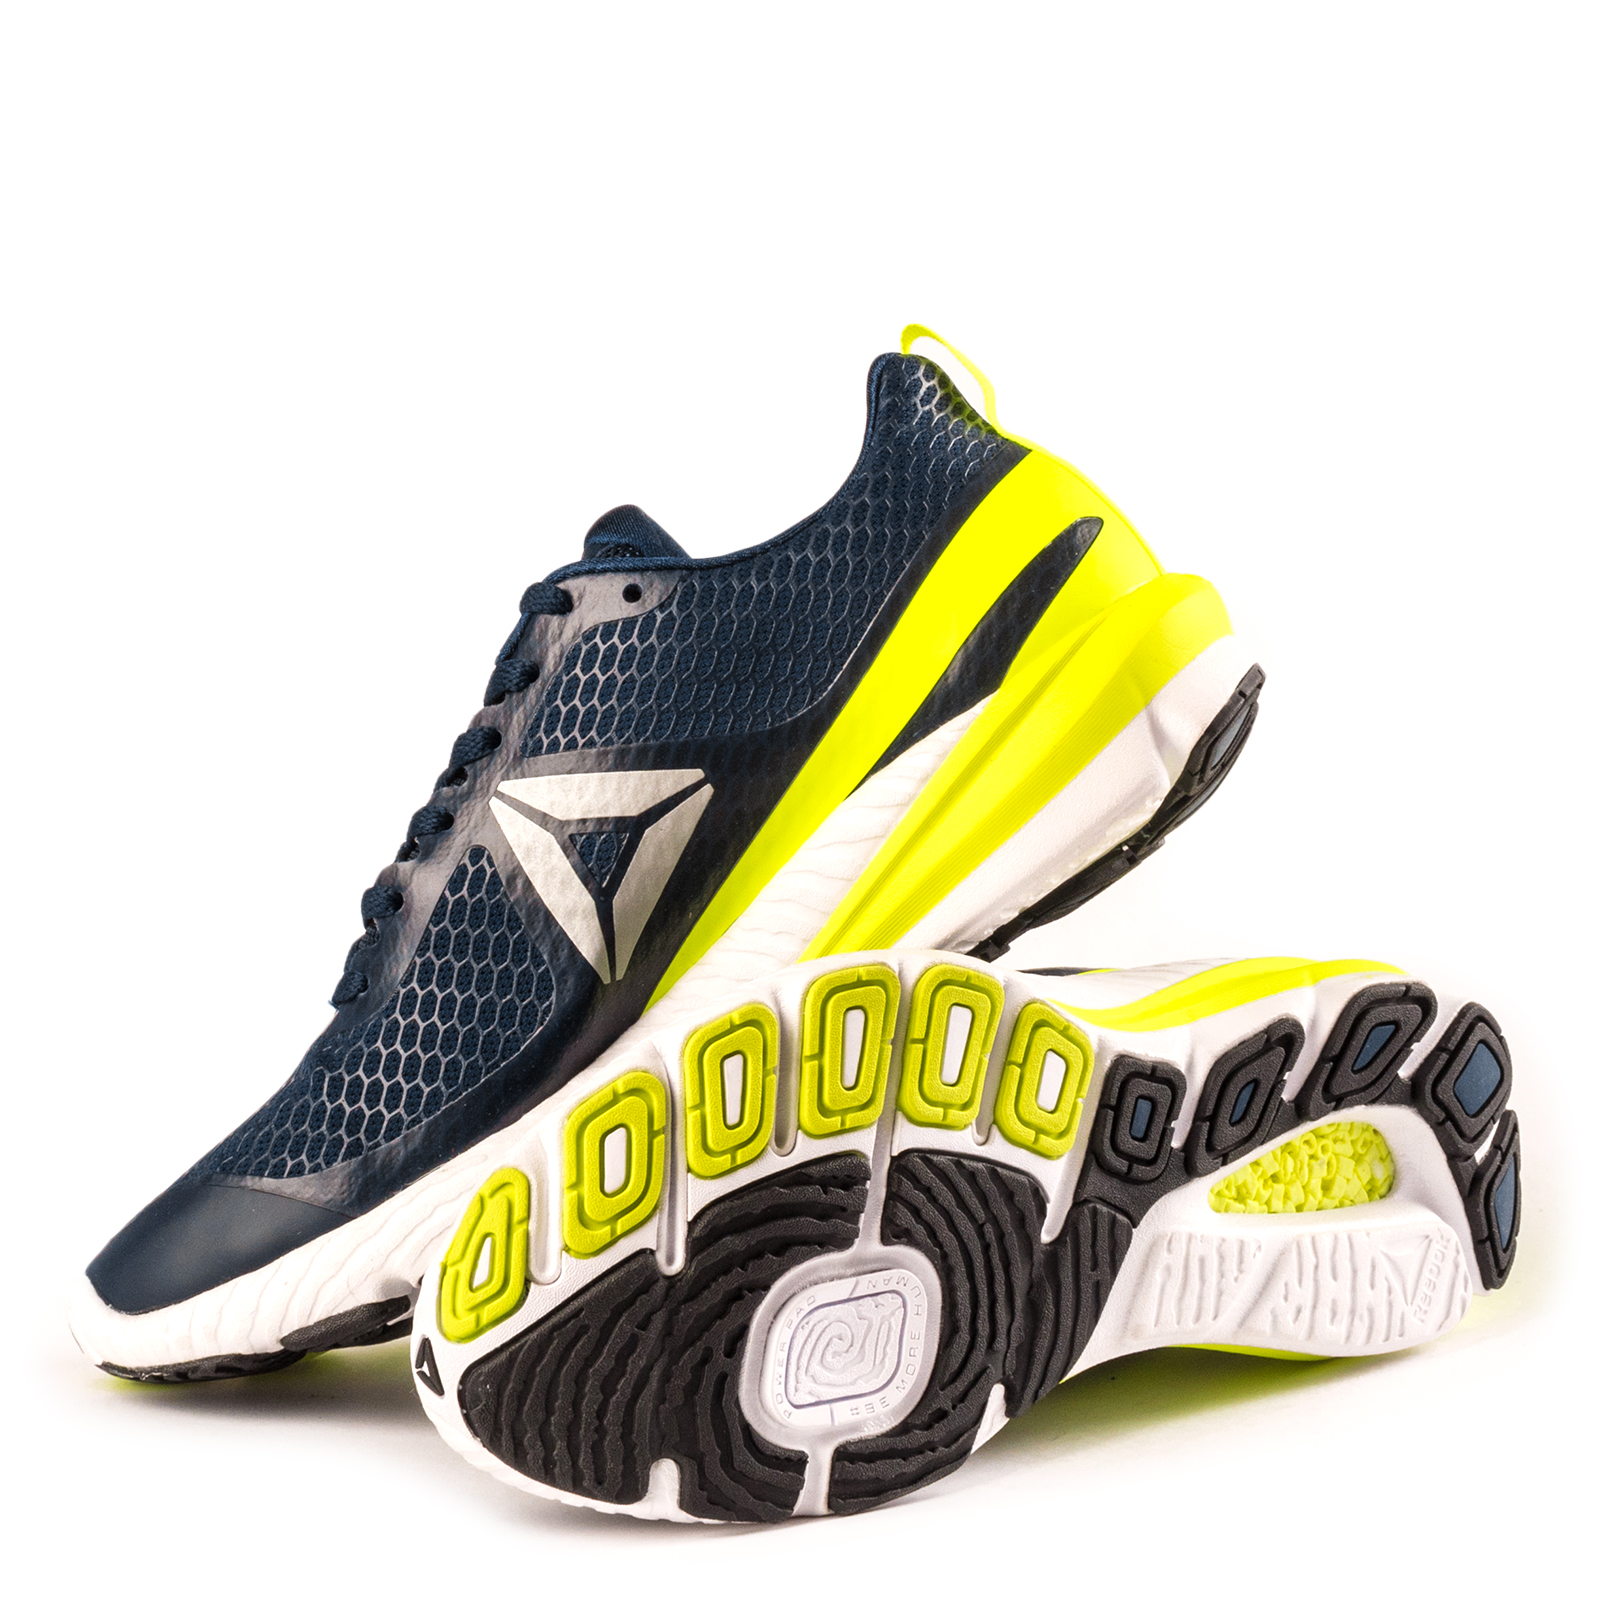 Available from 10.11 REEBOK running shoes BD4630 xiaomi smart shoes mijia running shoes